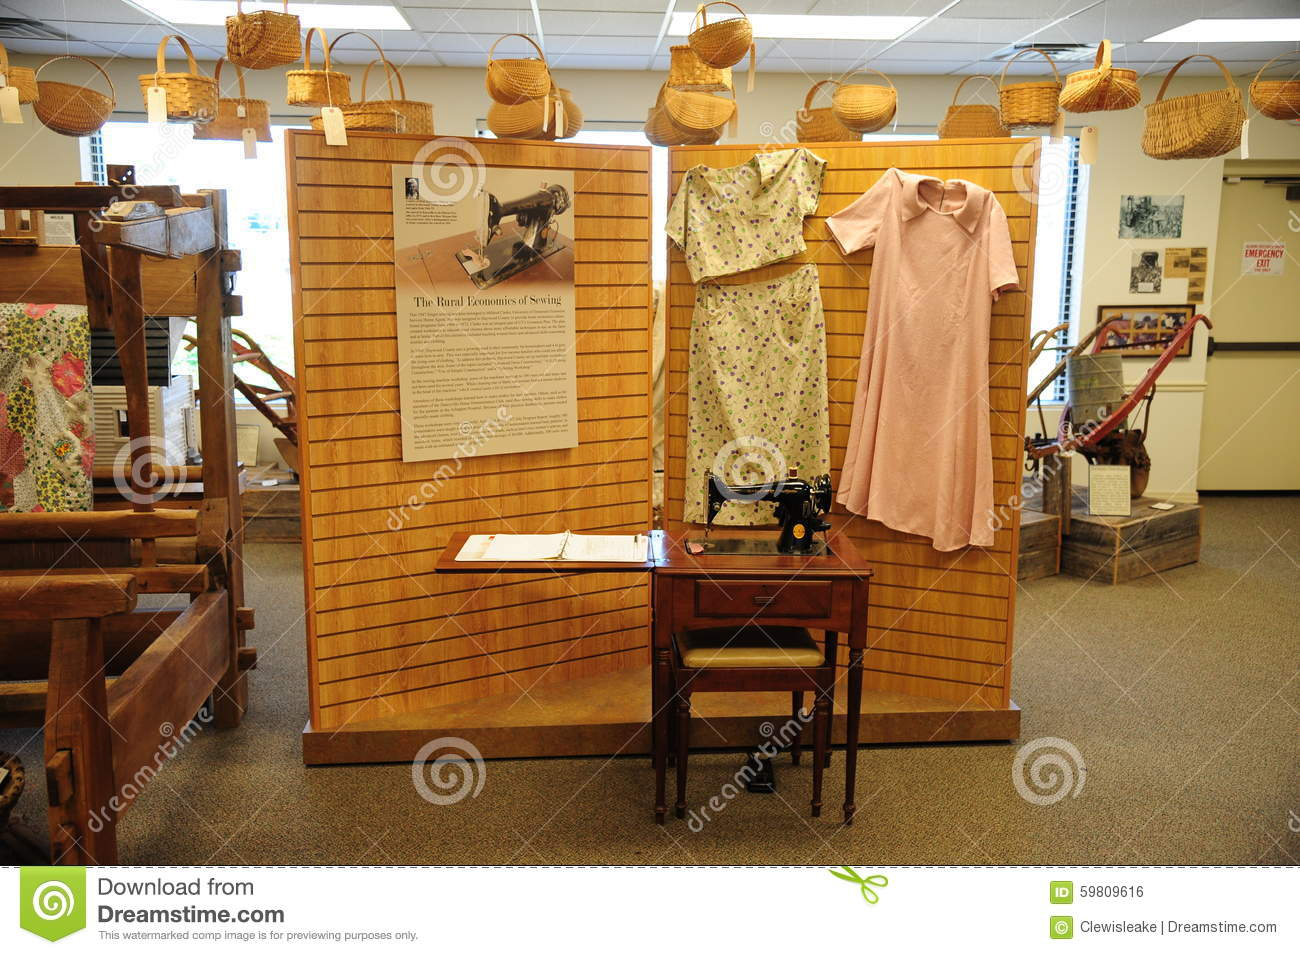 Sewing exhibit at the West Tennessee Delta Heritage Center